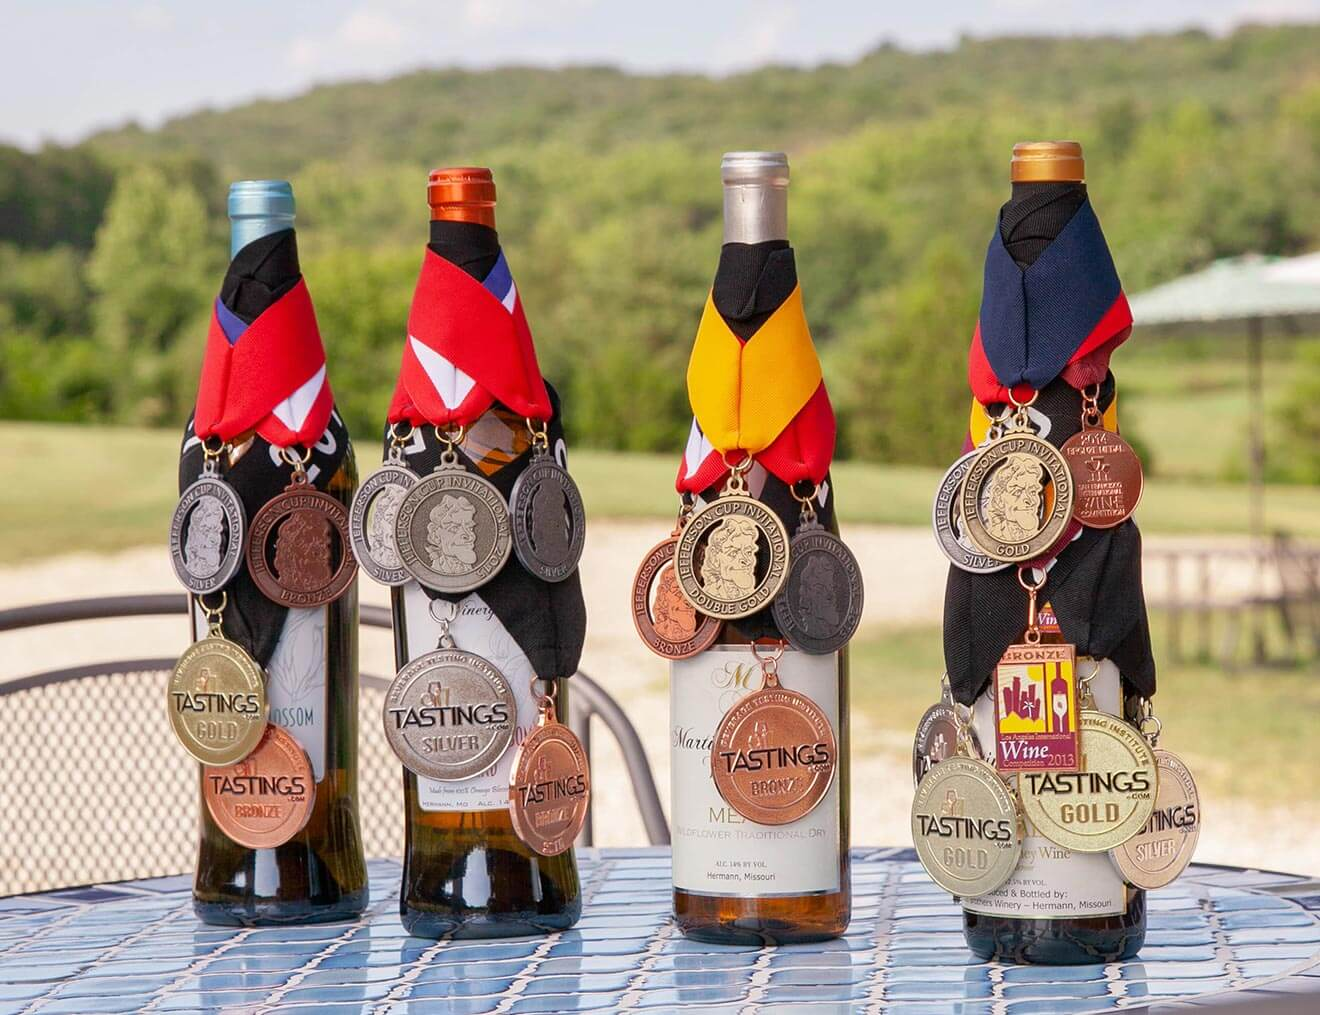 Martin Brothers Winery, bottles with awards